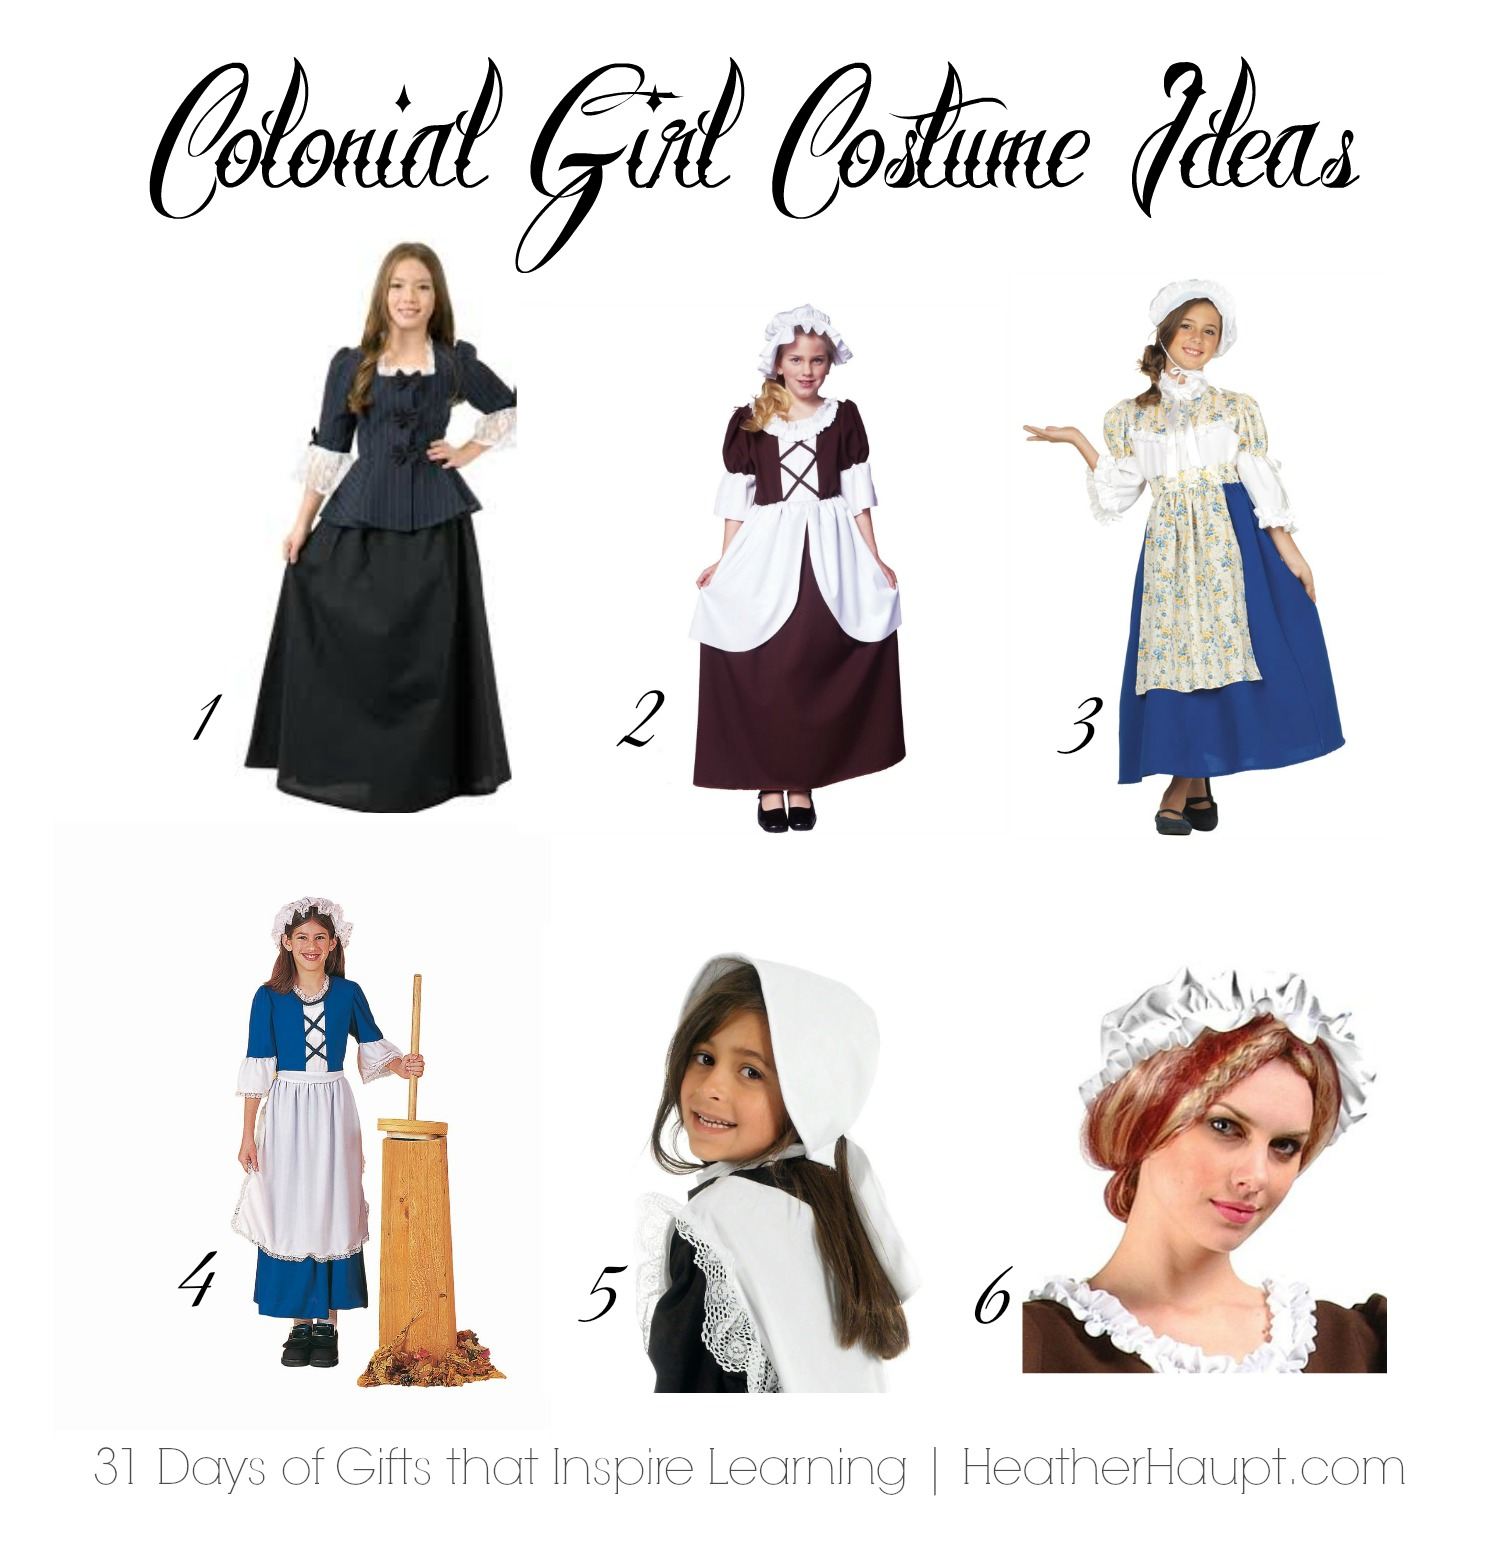 colonial girls school analysis Start studying colonial girls school by olive senior learn vocabulary, terms, and more with flashcards, games, and other study tools.